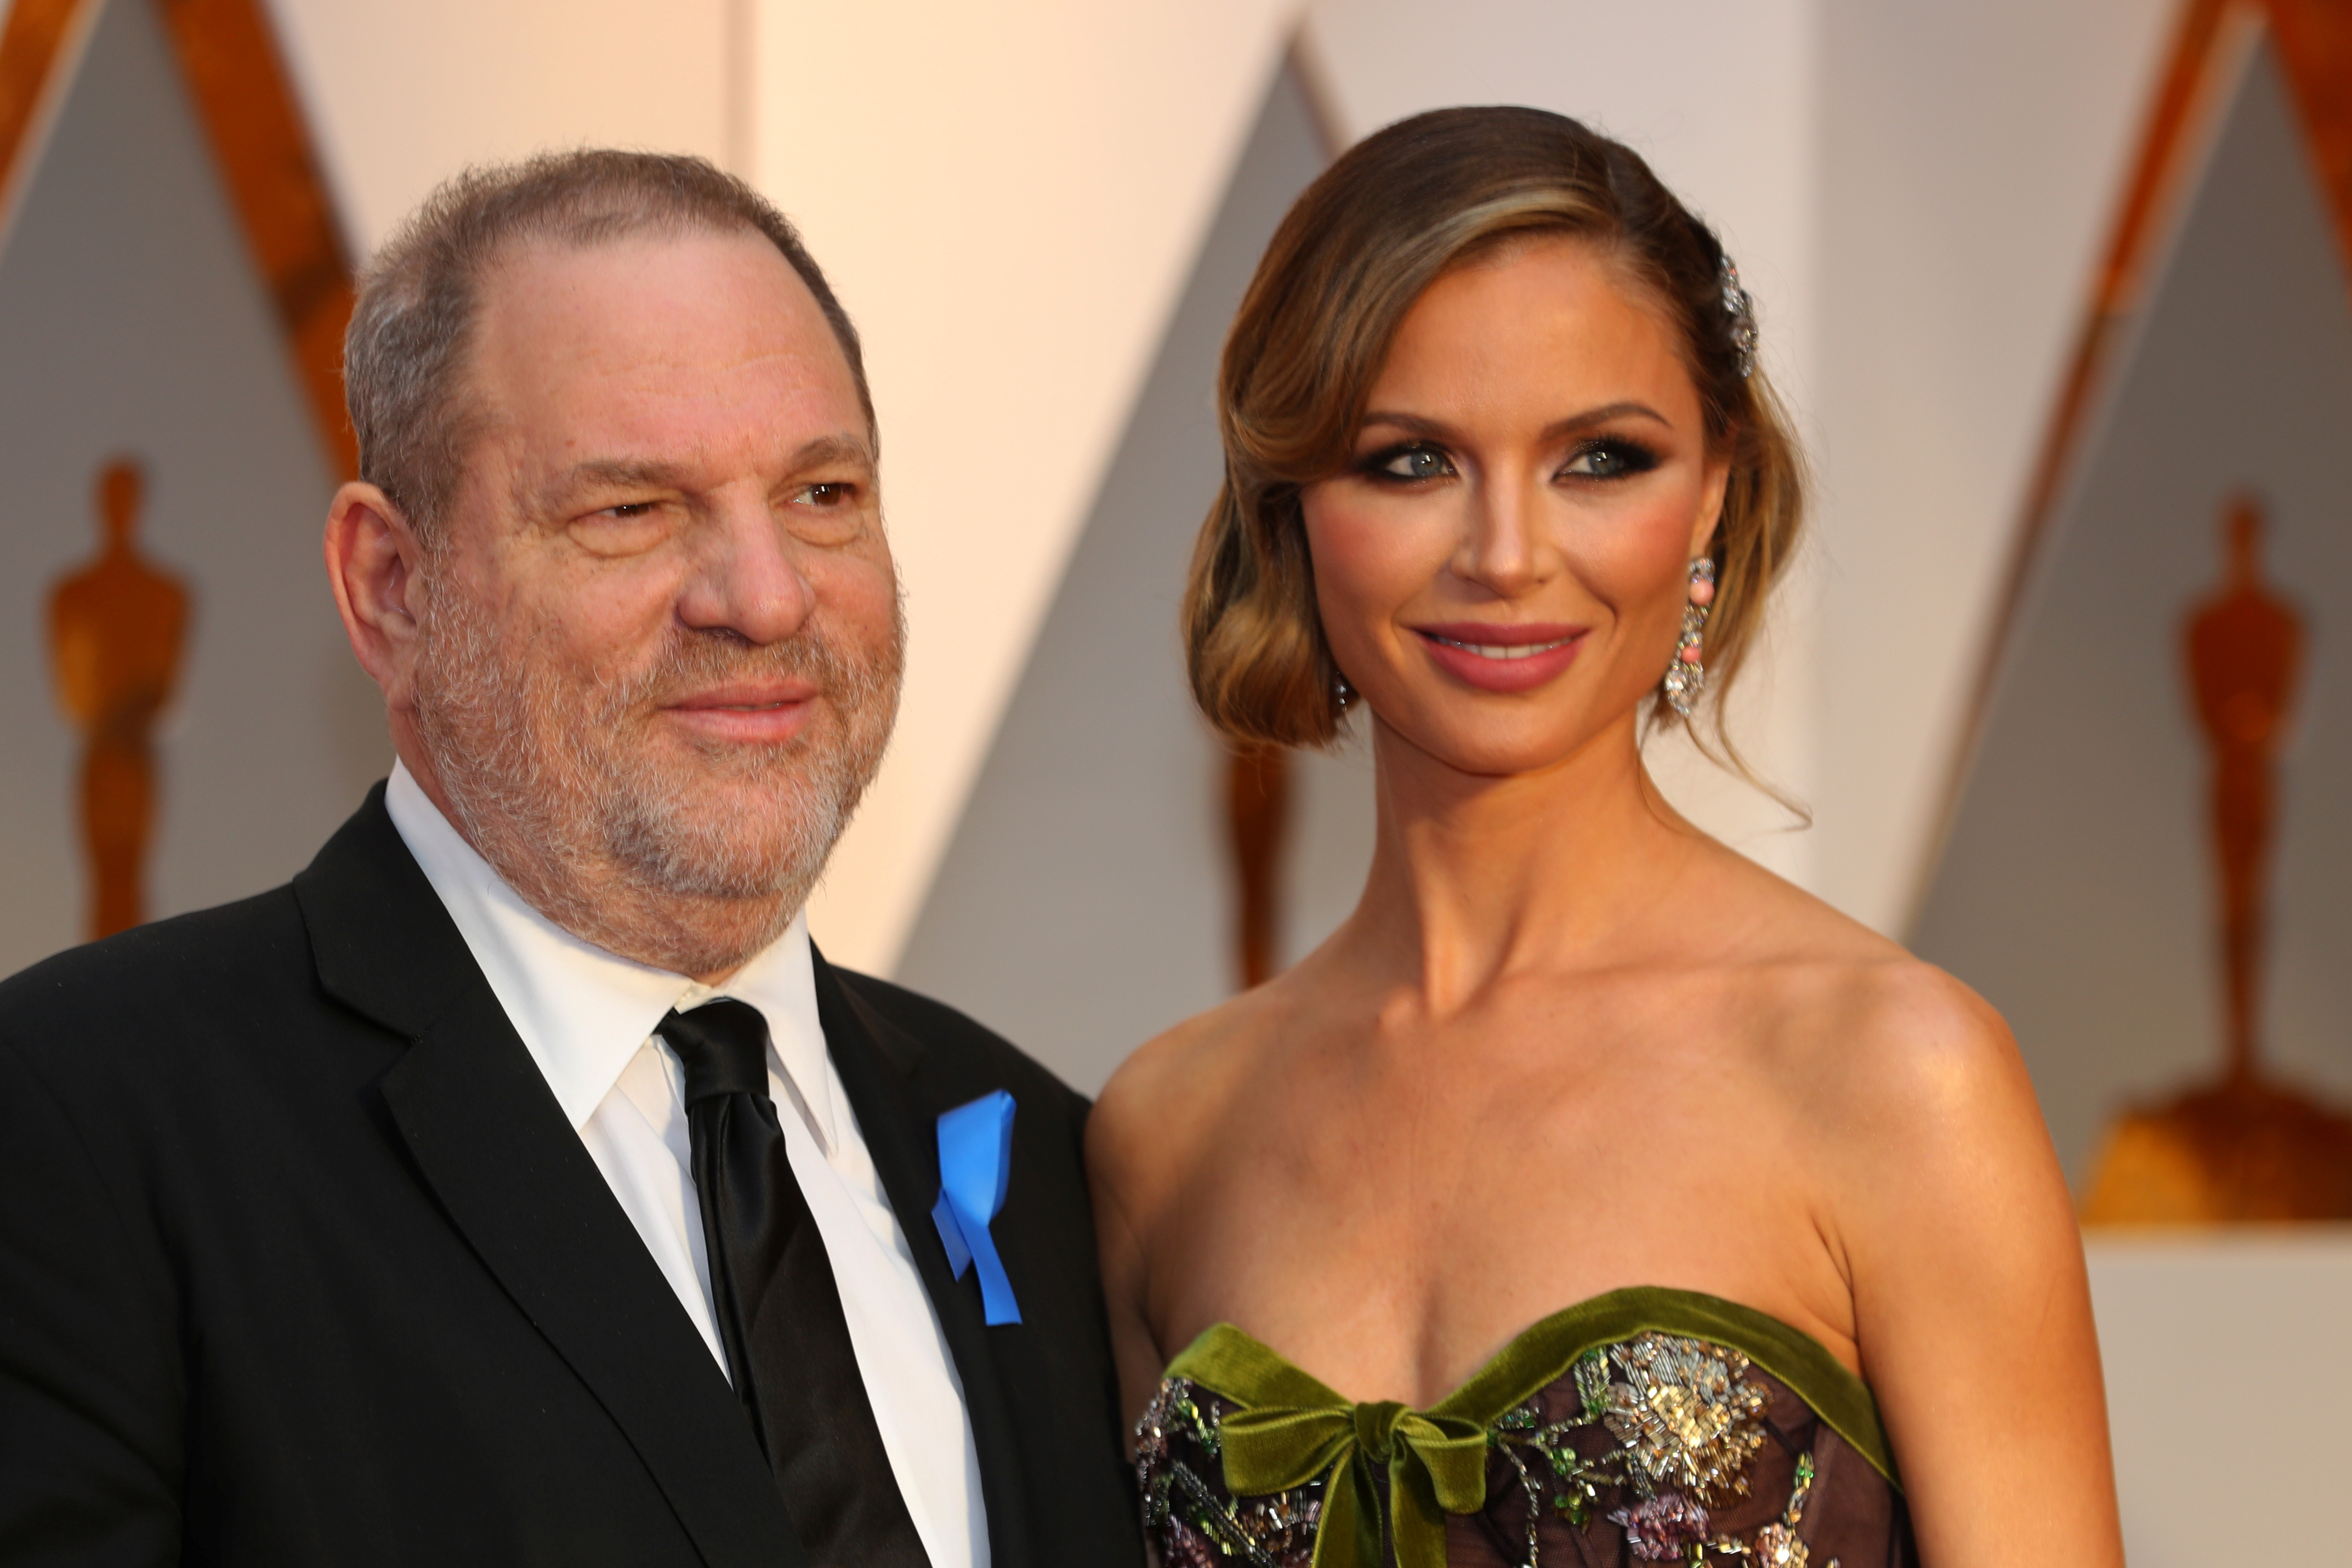 Harvey Weinstein and wife Georgina Chapman ararrive at the 89th Academy Awards in Hollywood, California, U.S. February 26, 2017. Picture taken February 26, 2017. REUTERS/Mike Blake - RC1D3D179690